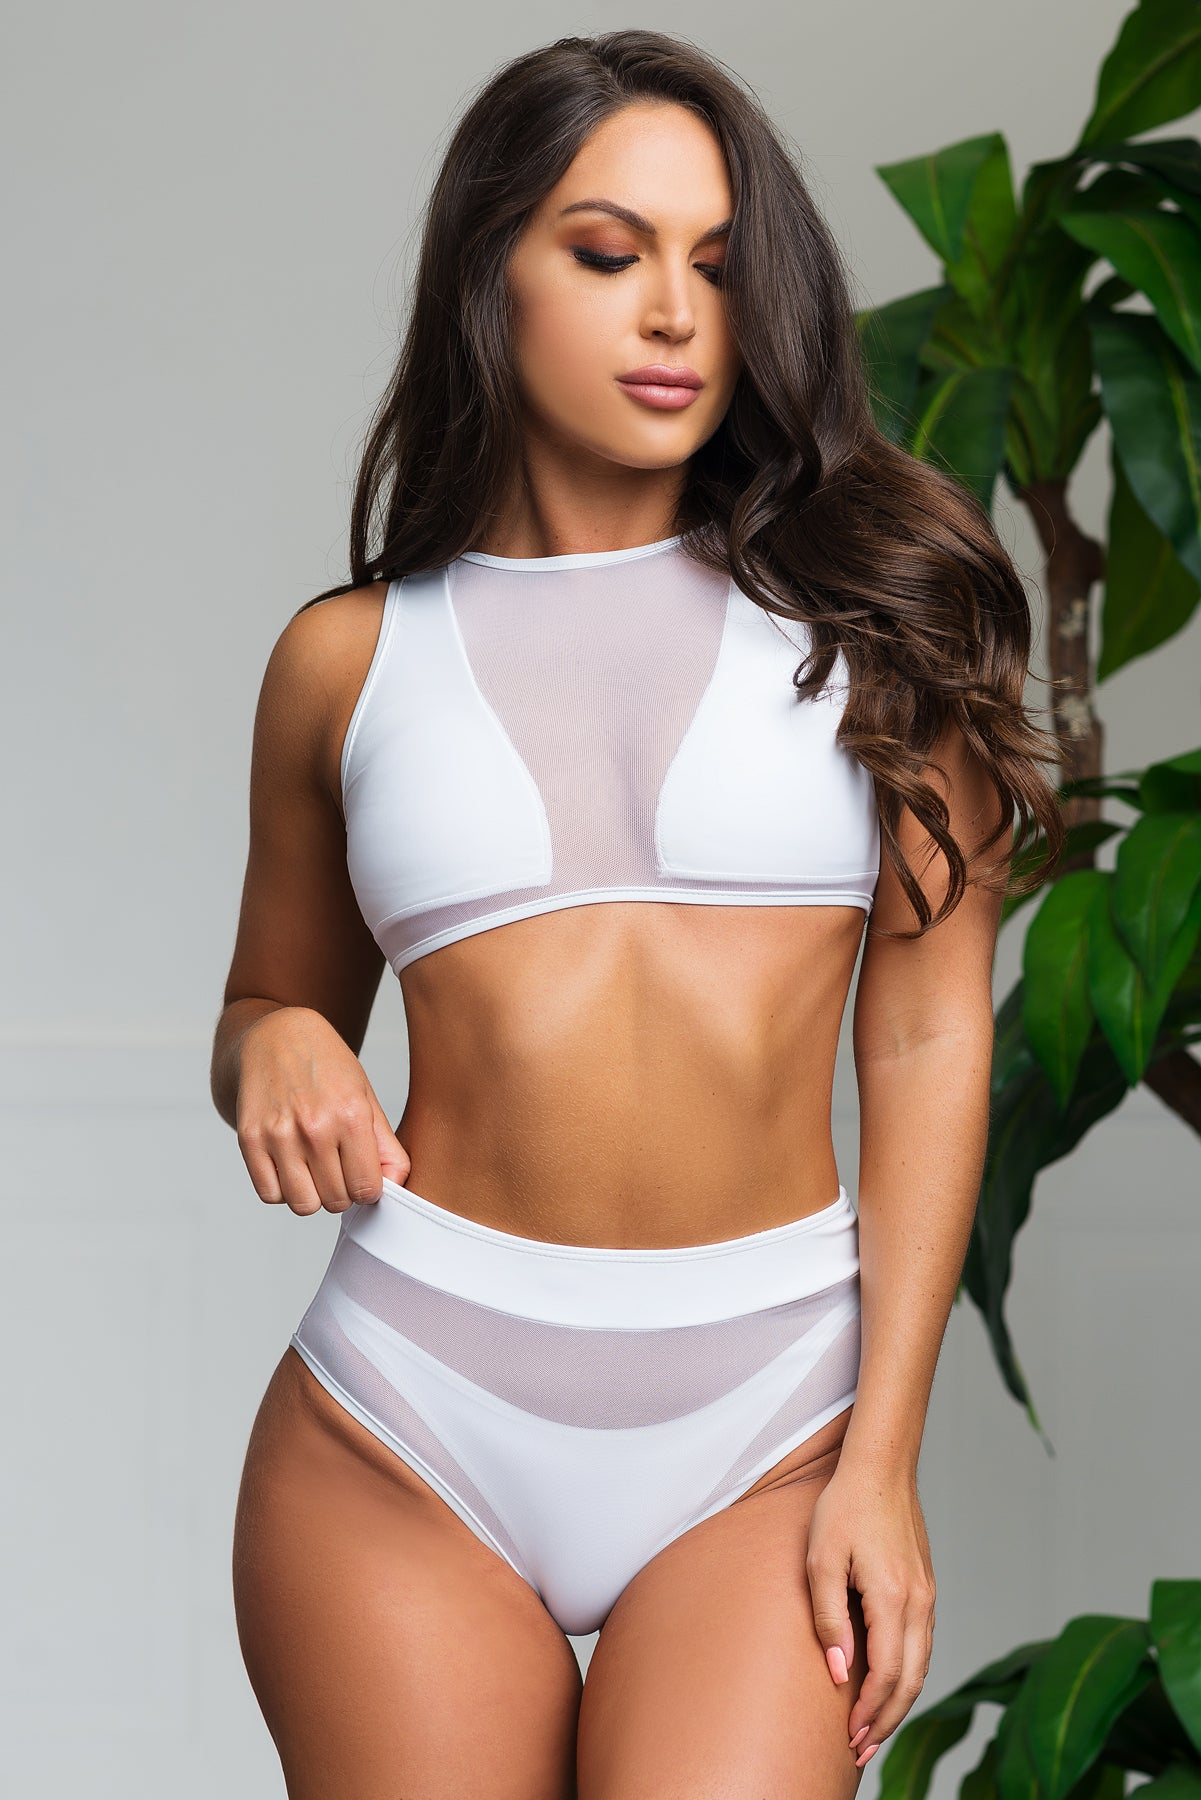 Nosara Beach Two Piece Swimsuit - White